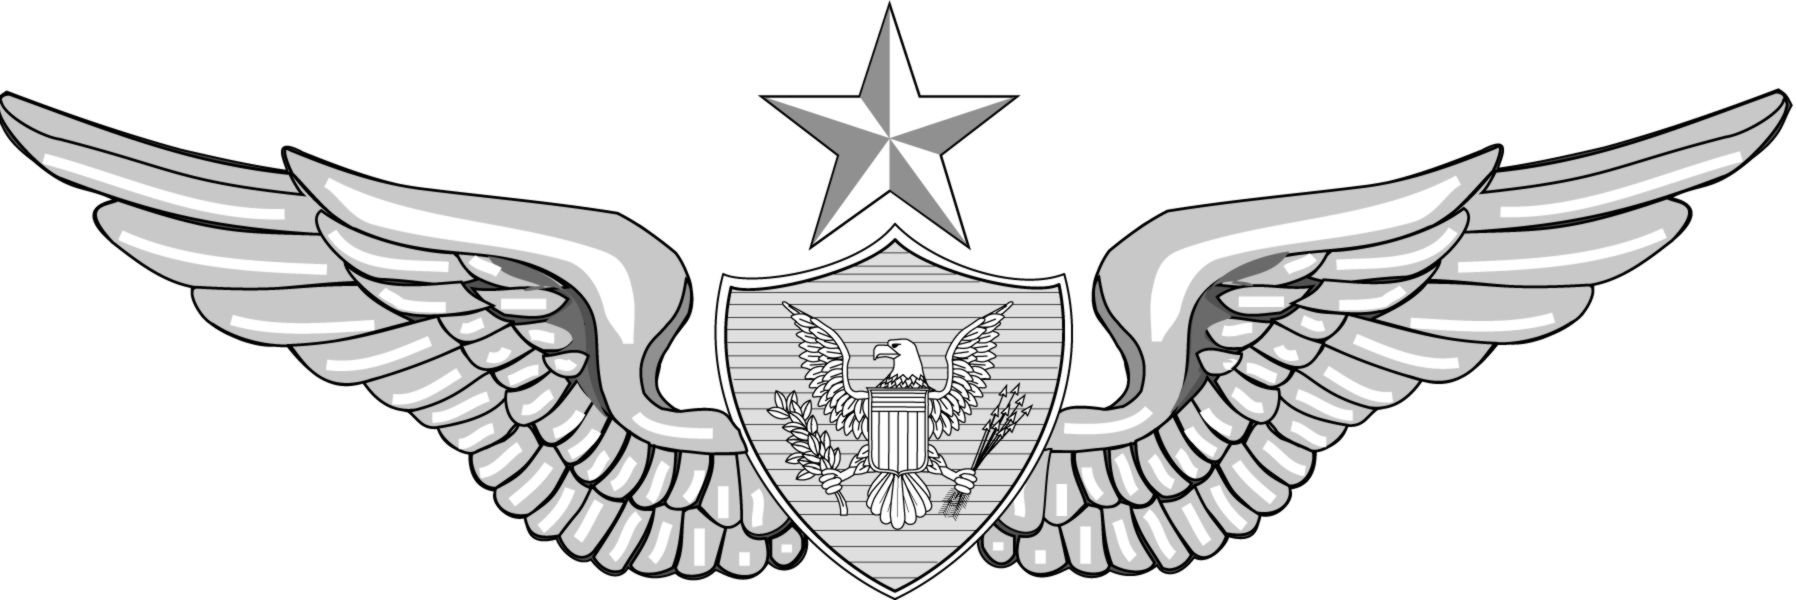 Military army clip art qualification badges 3.